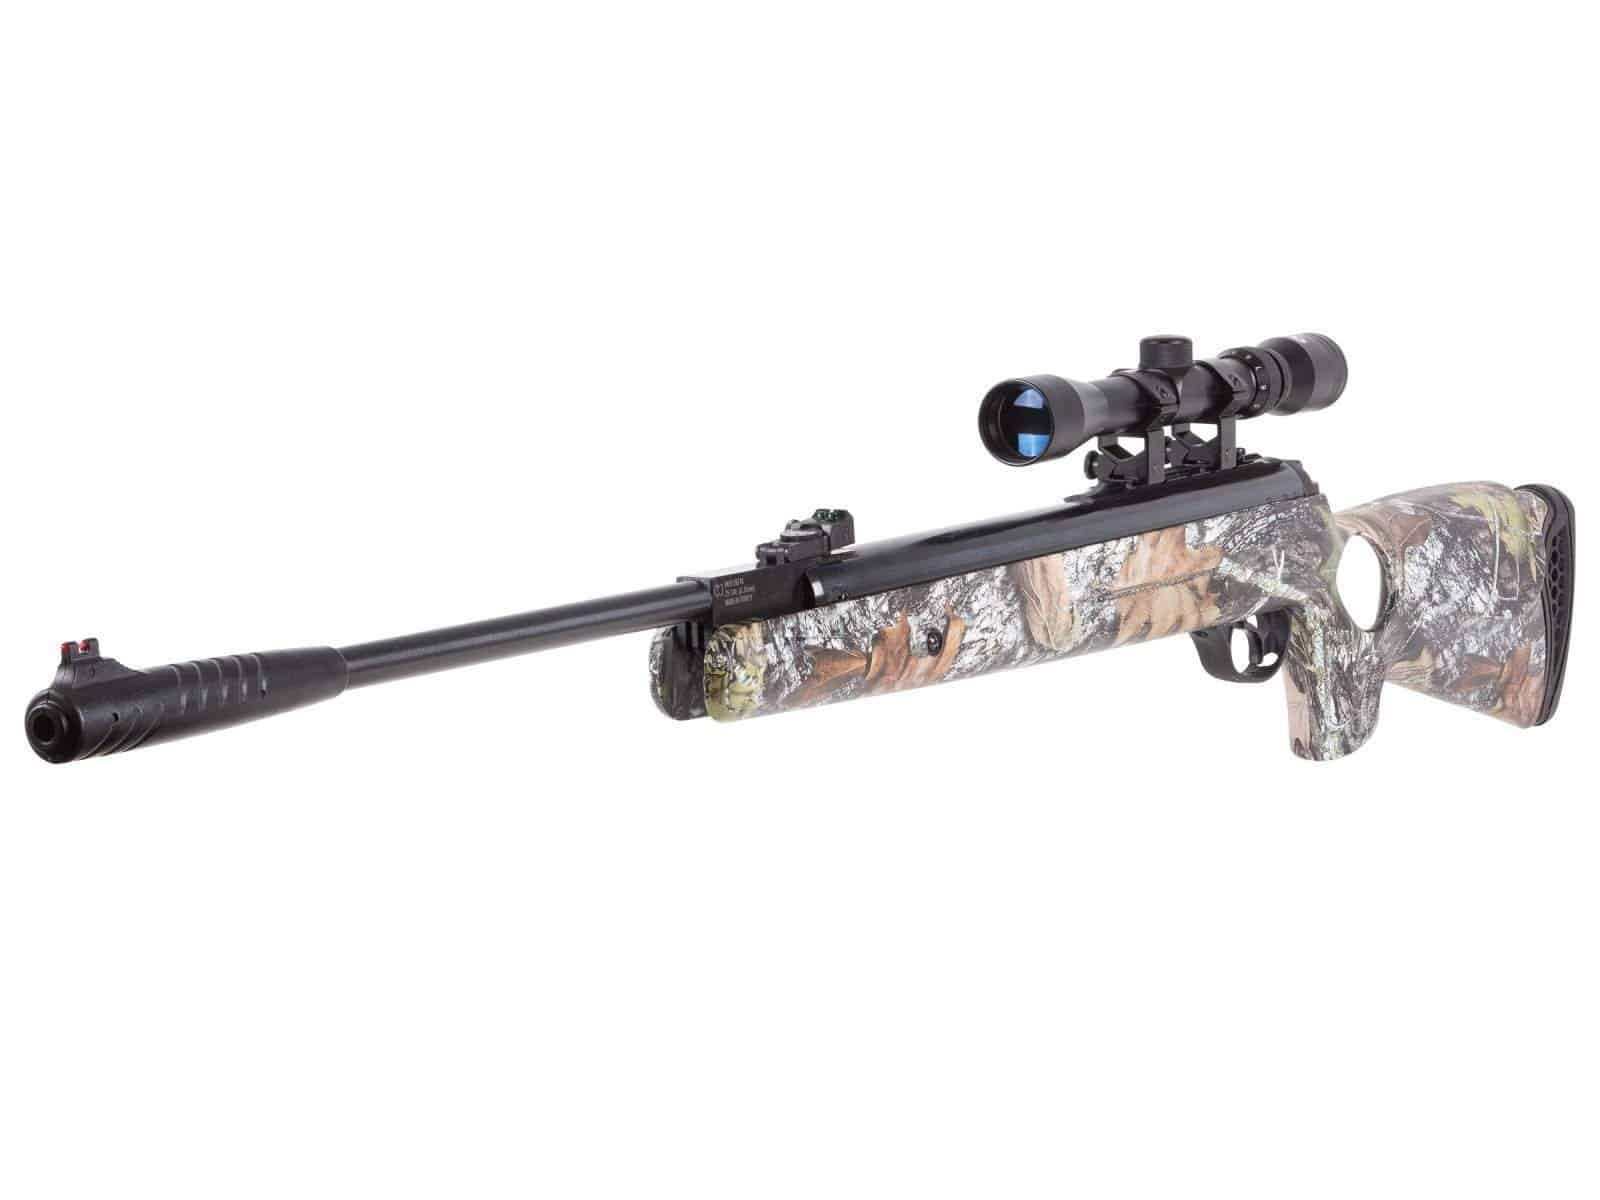 5+ Best Hatsan Air Rifle Reviews - Are They Worth It?